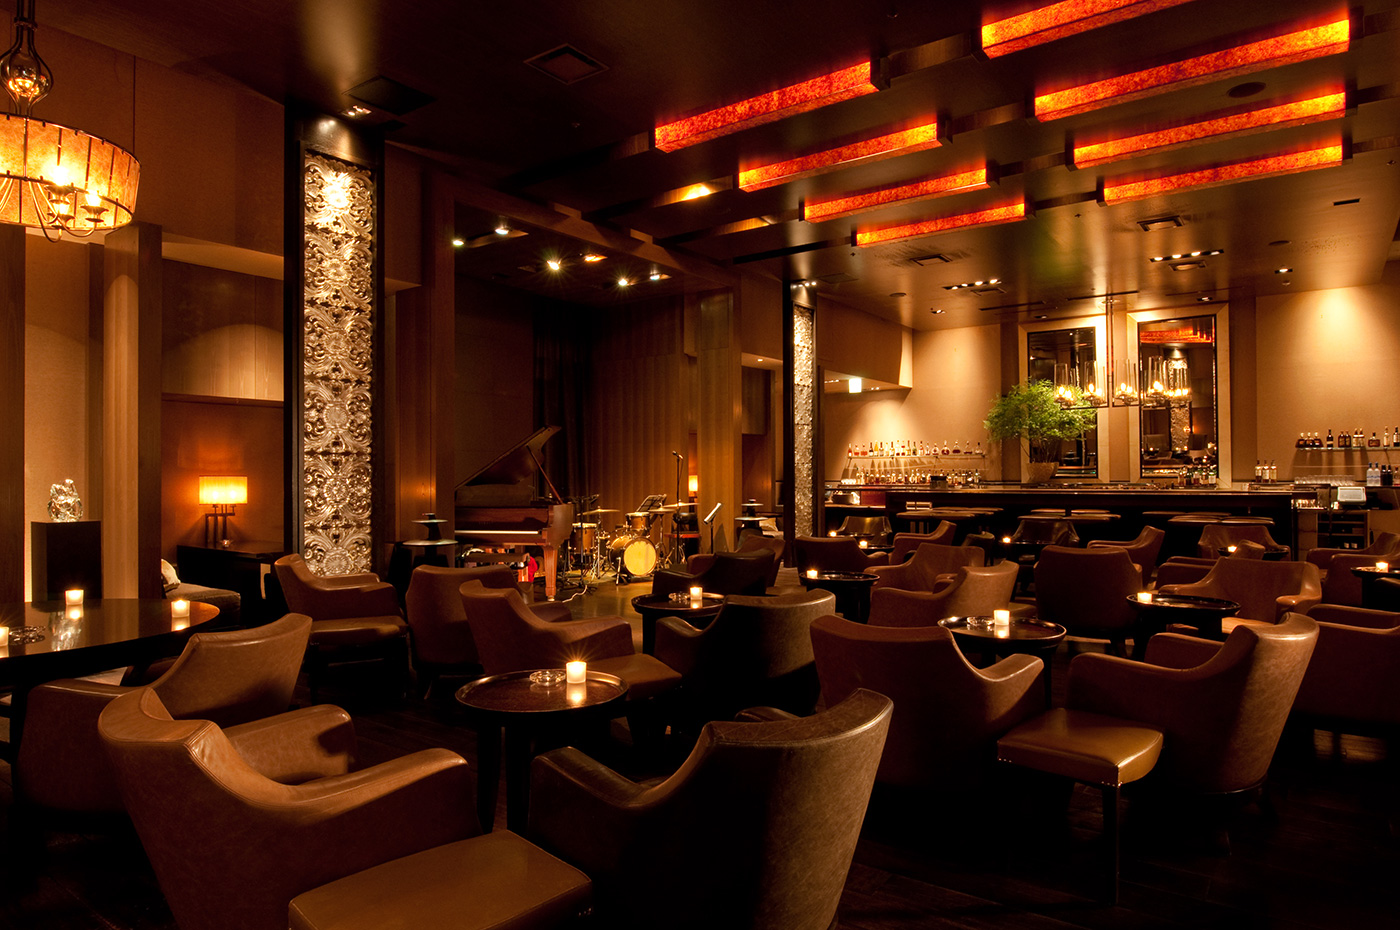 Maduro Private Party Plan Restaurants At A Luxurious